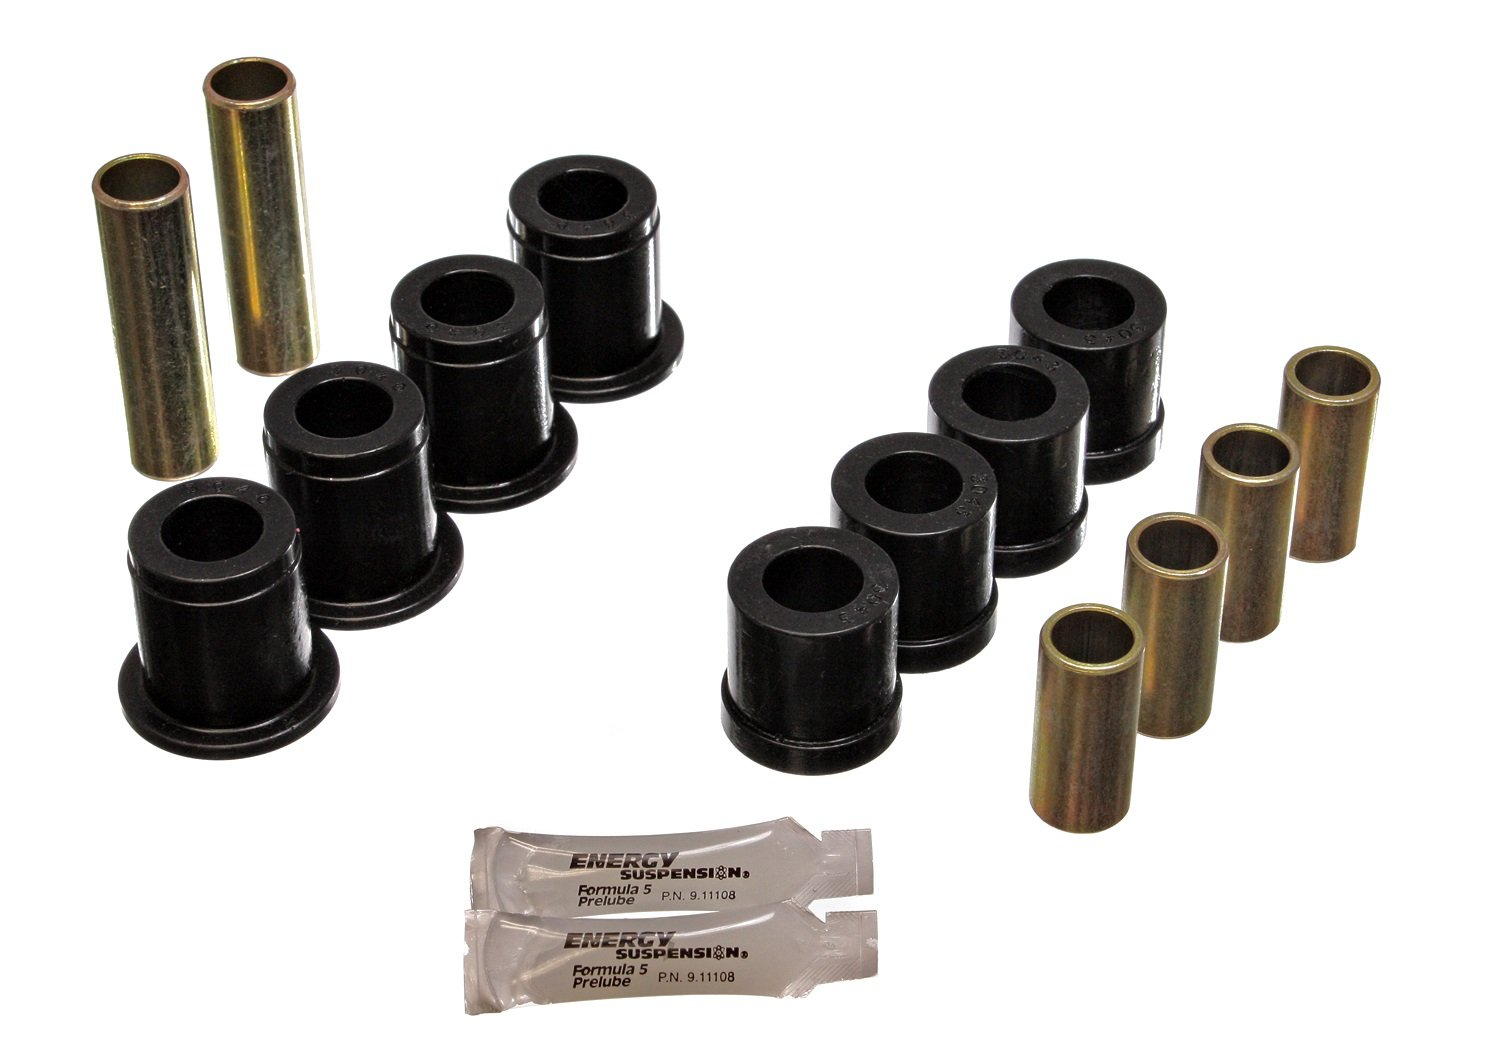 Energy Suspension 7.3102G Central Arm Bushing for Nissan by Energy Suspension